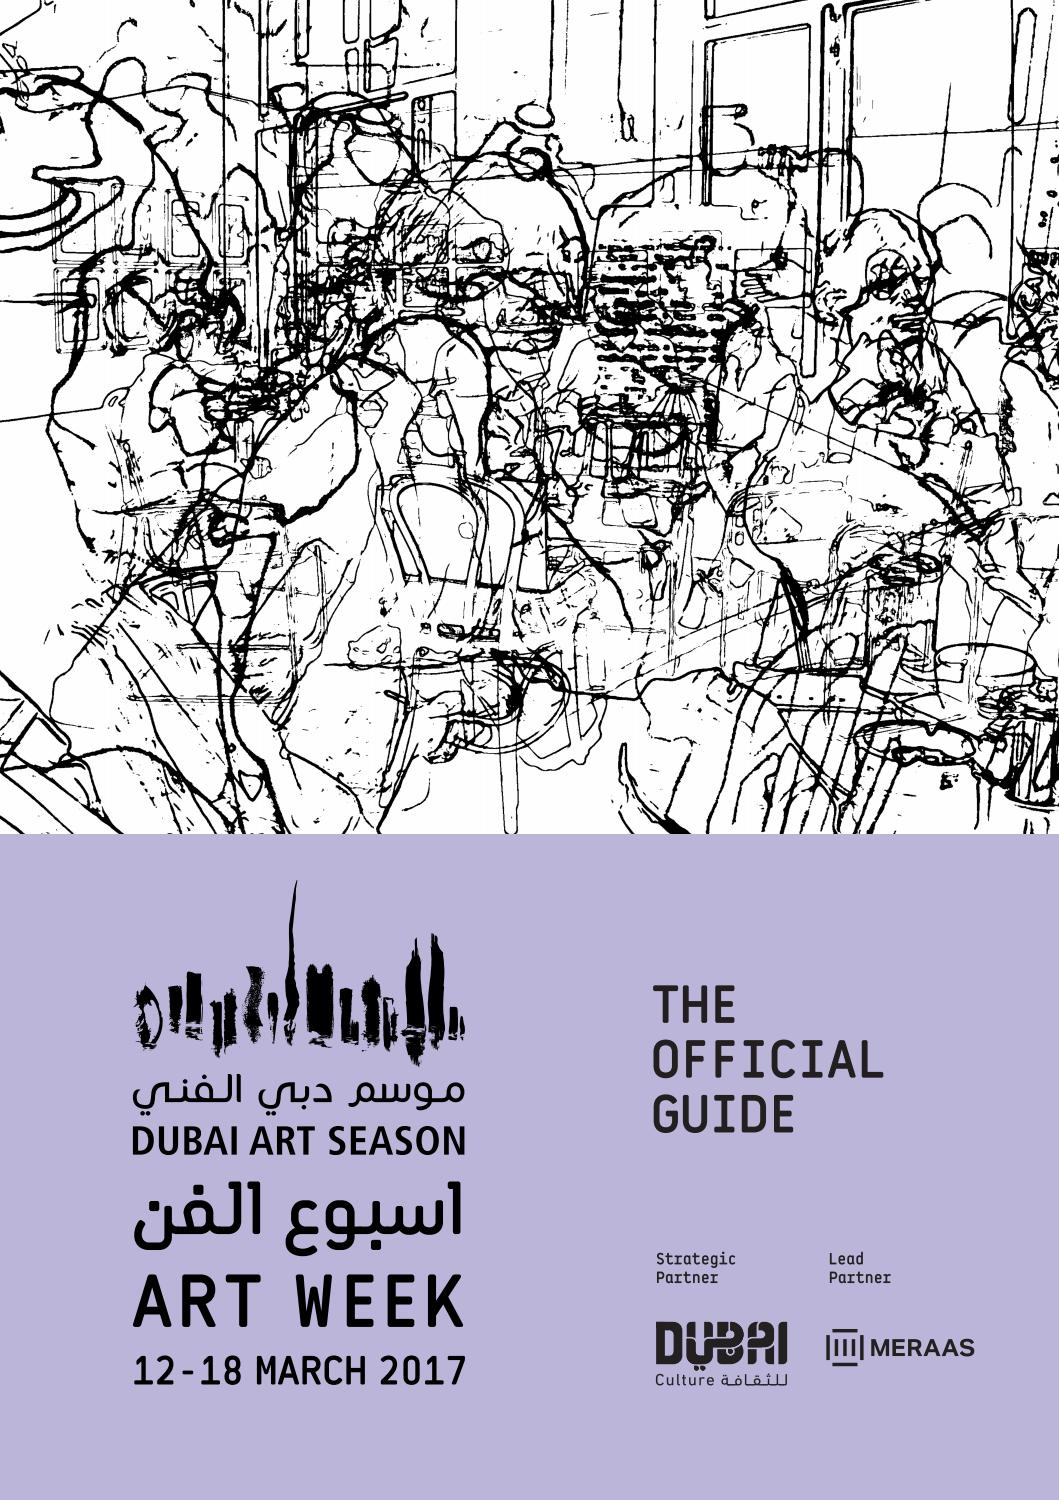 Art Week 2017 By Dubai Issuu Block Diagram Sbd Audio Dock Portable Ticom